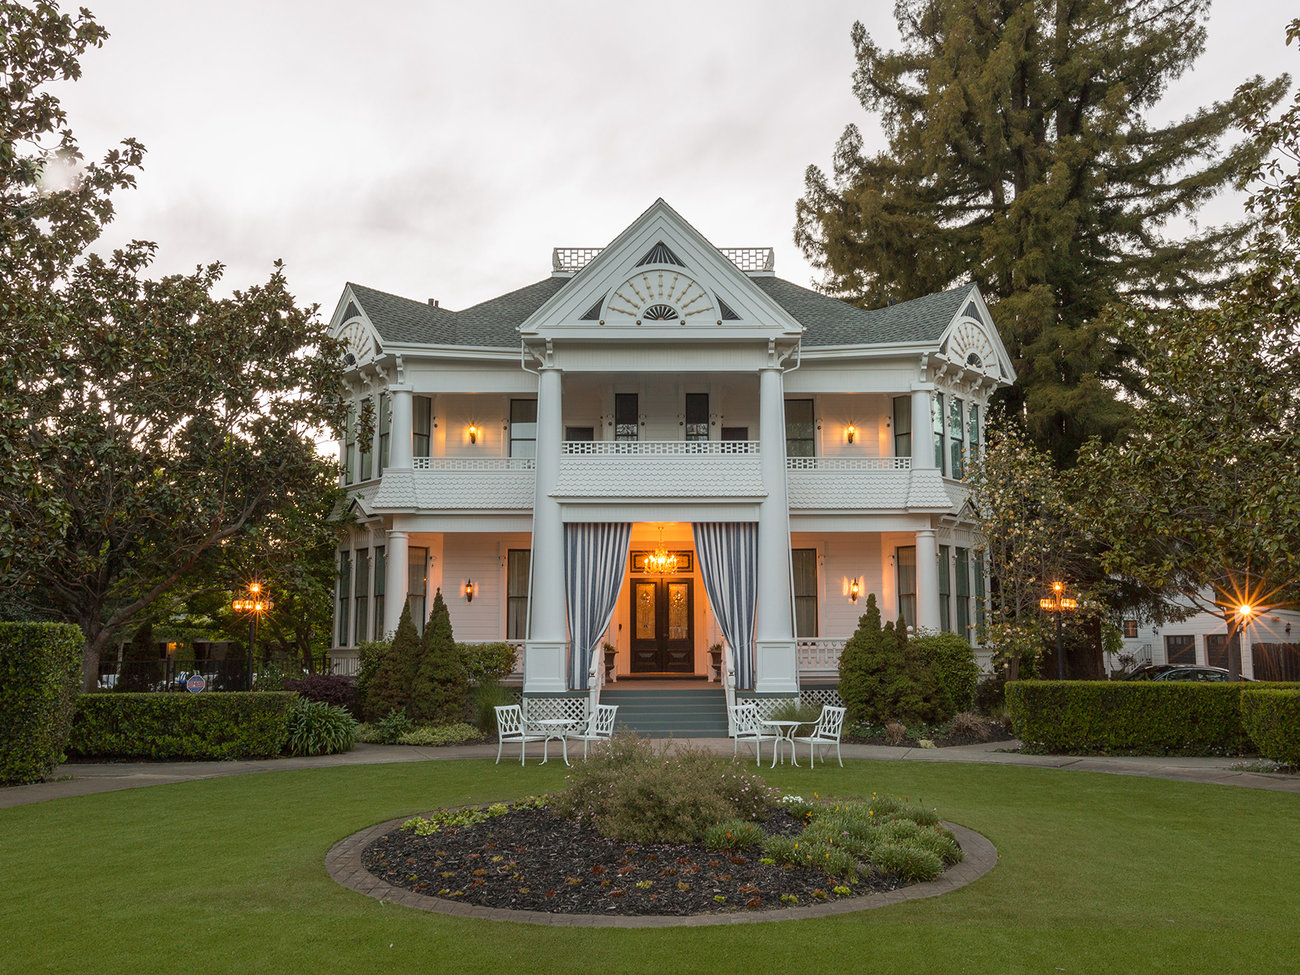 The White House Hotel in Napa